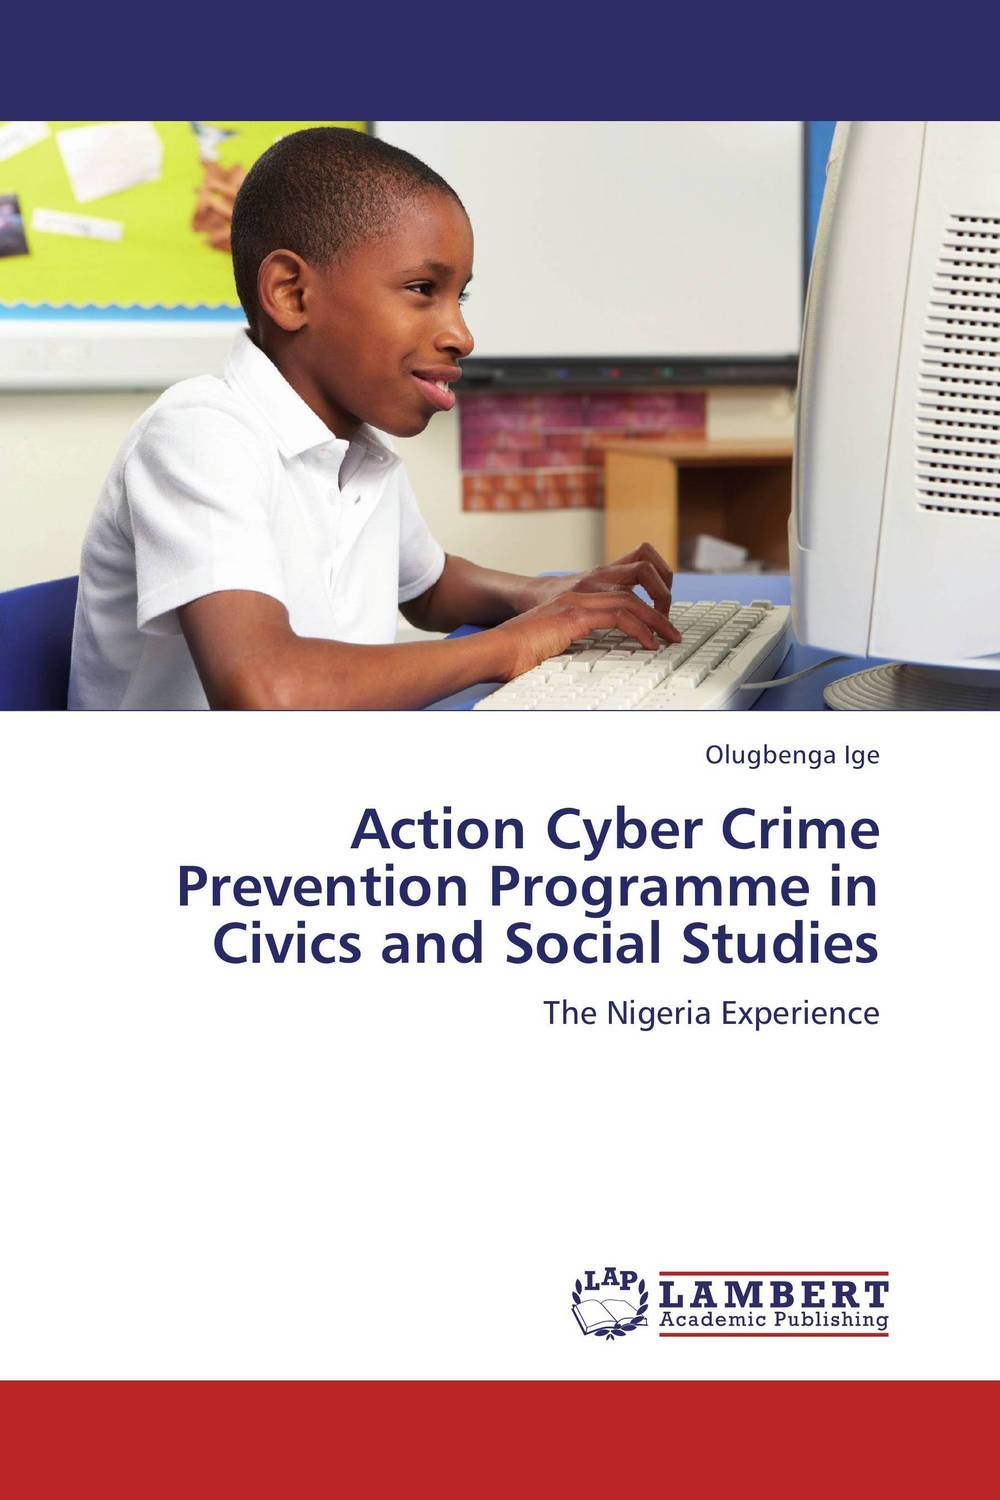 Action Cyber Crime Prevention Programme in Civics and Social Studies